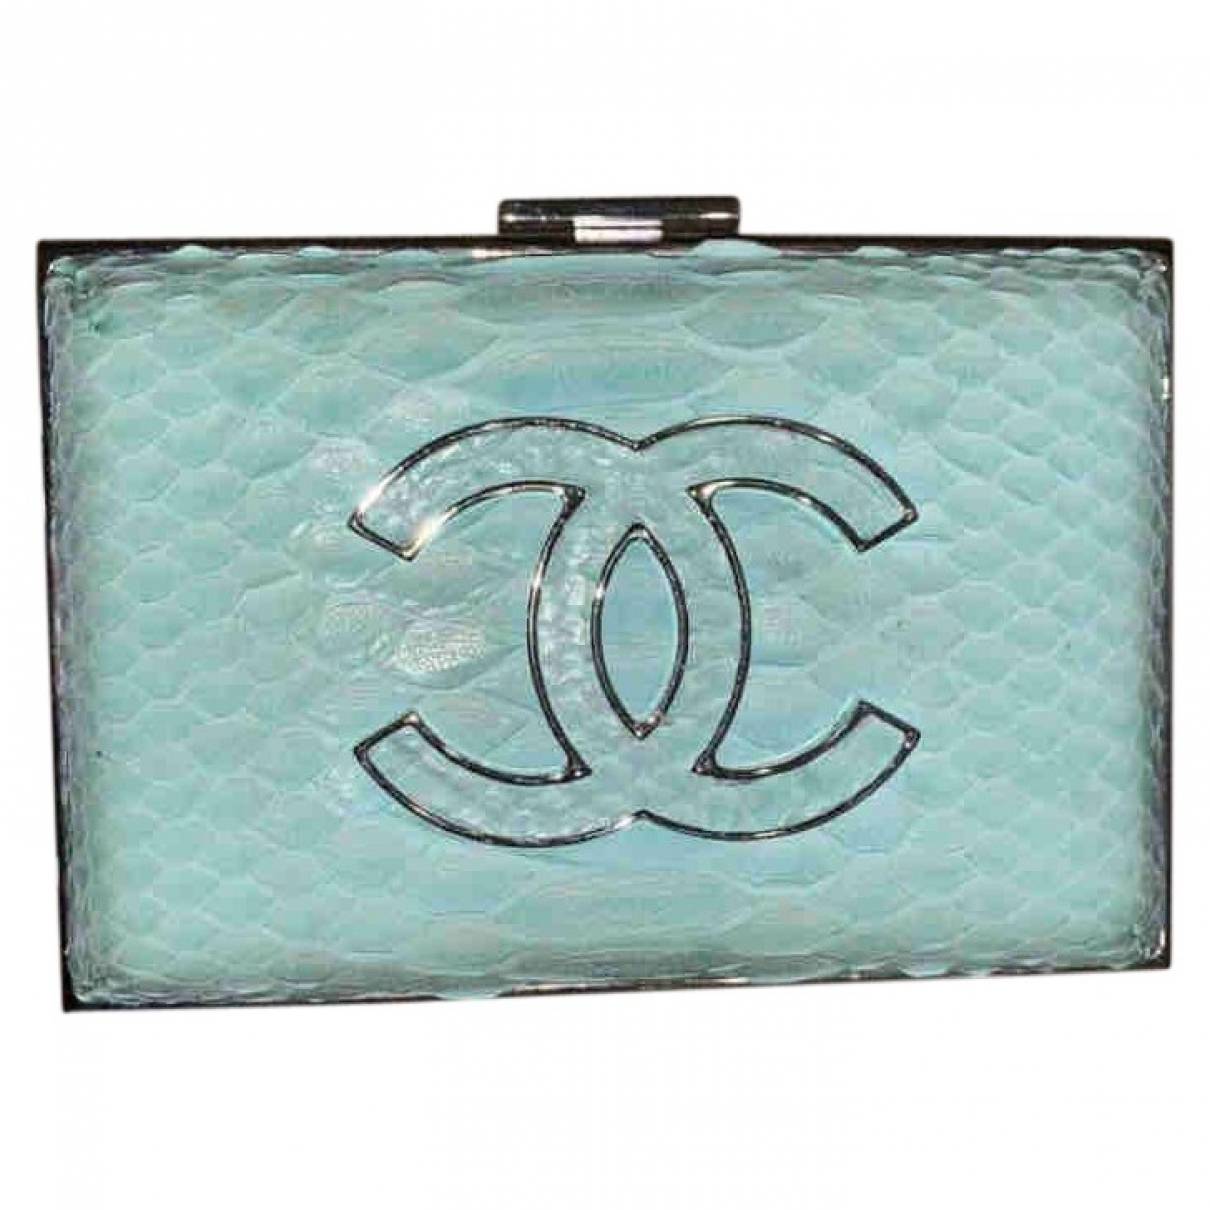 Chanel \N Turquoise Python Clutch bag for Women \N